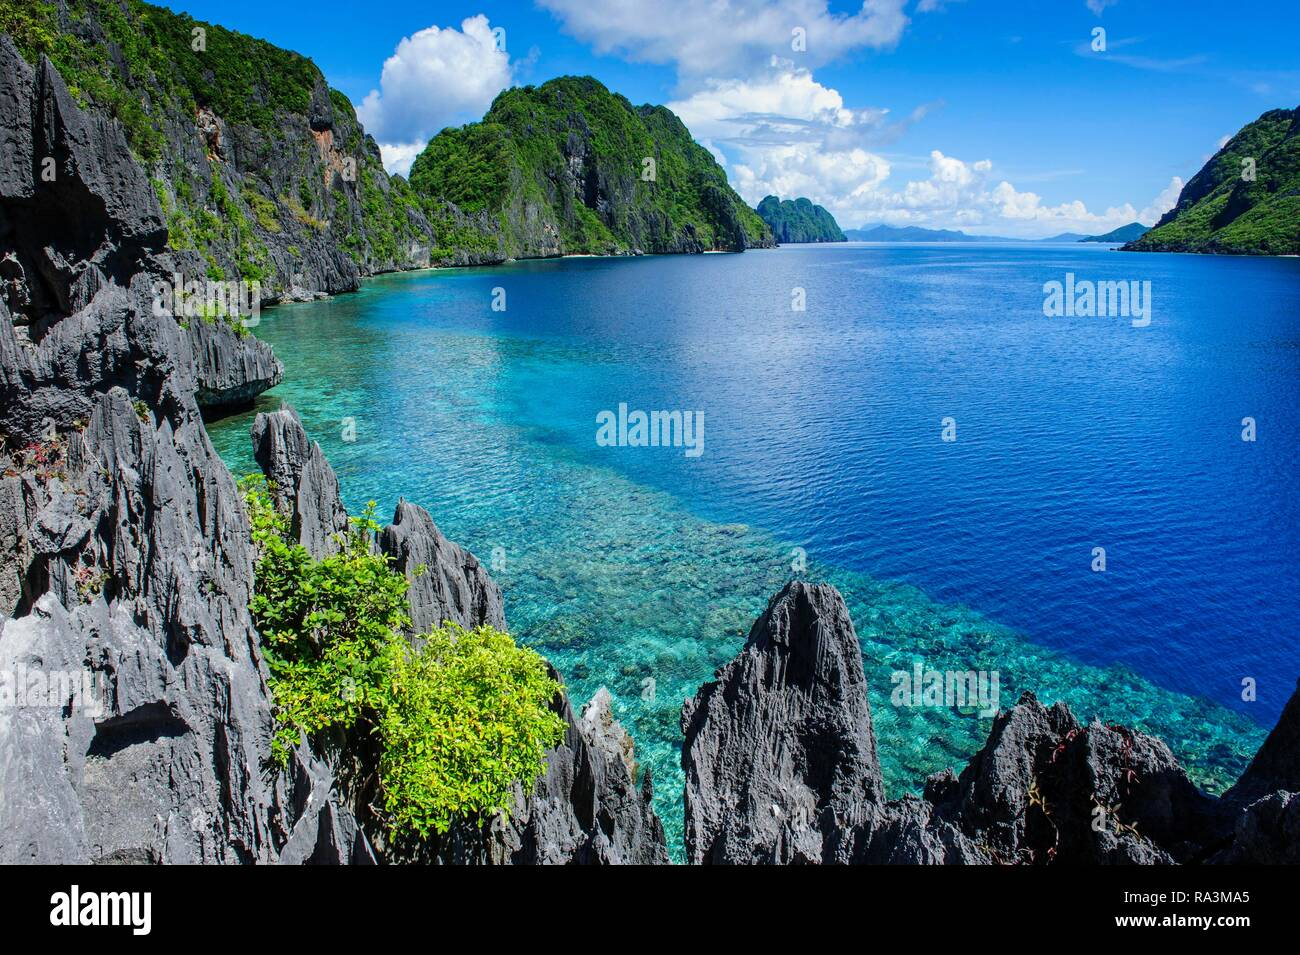 Coast with crystal clear water and limestones, Bacuit archipelago, El Nido, Palawan, Philippines - Stock Image